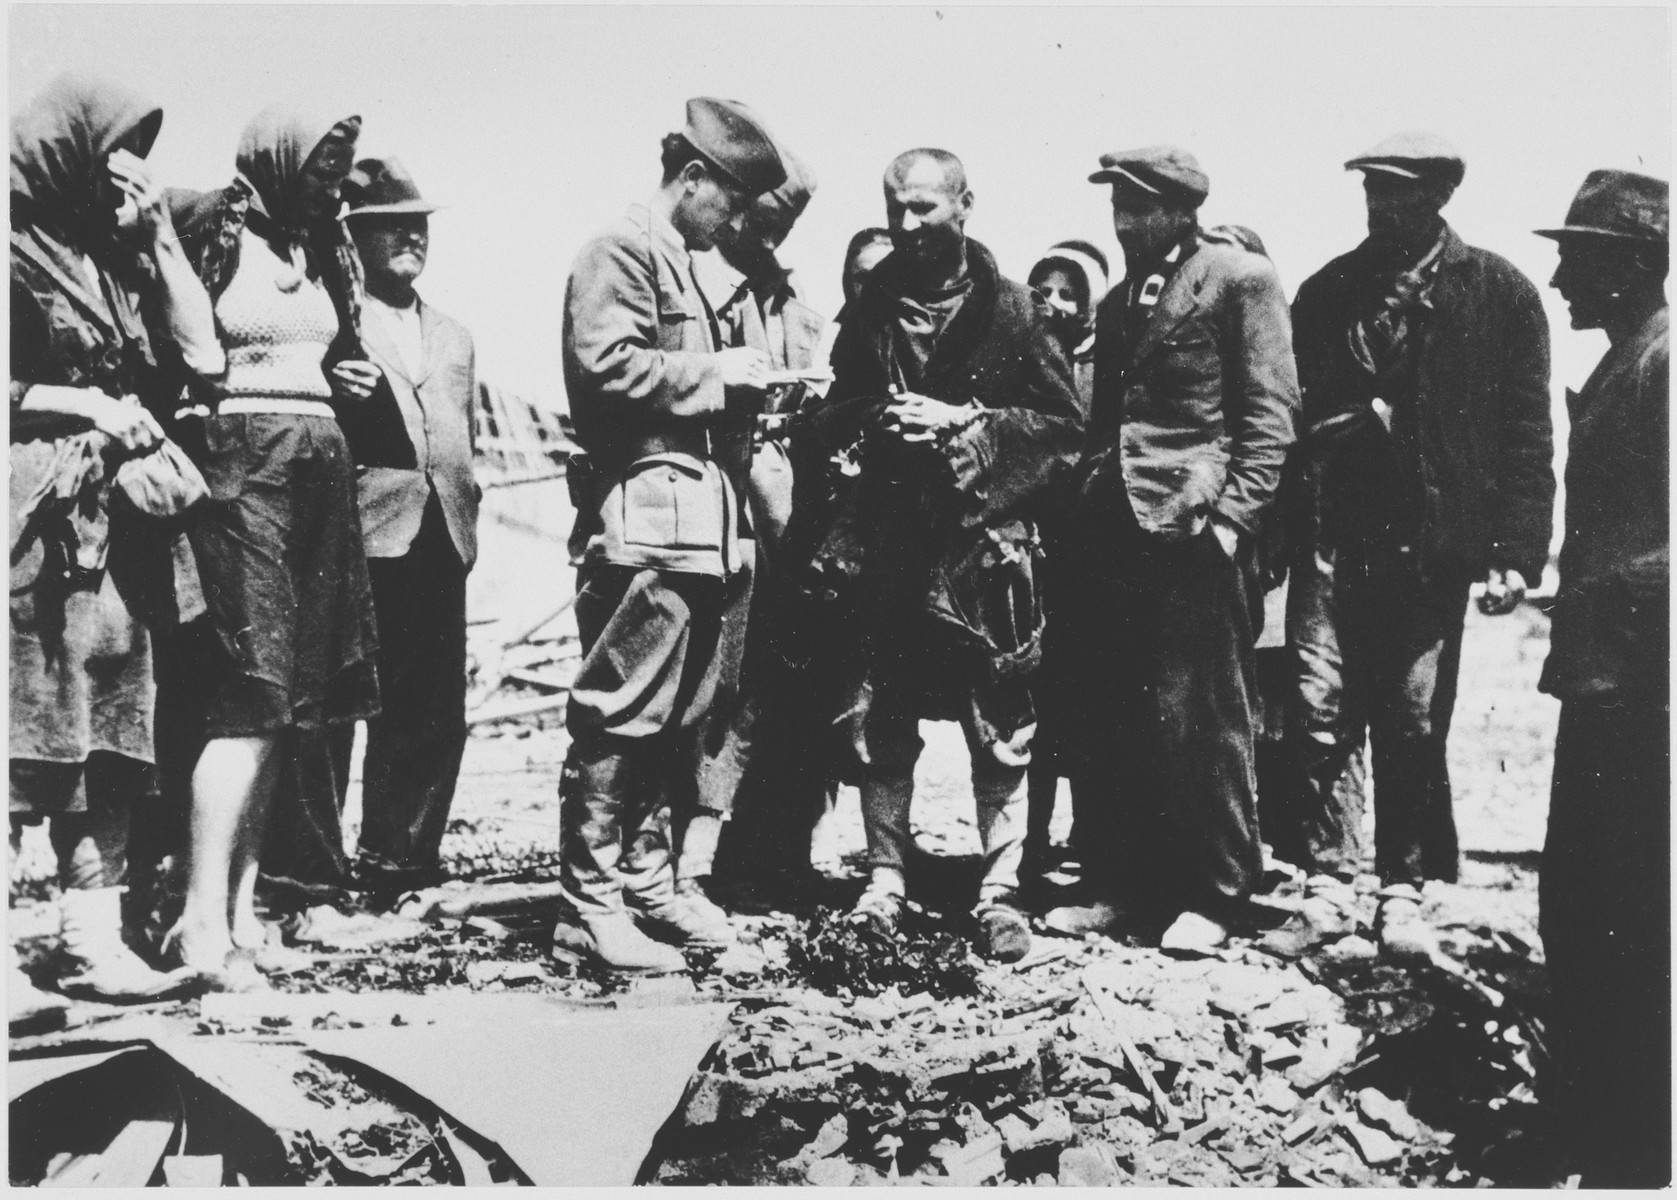 Members of the State Commission for the Investigation of Crimes Committed by the Occupiers and their Collaborators interview a group of men and women at the site ofthe Jasenovac III concentration camp.